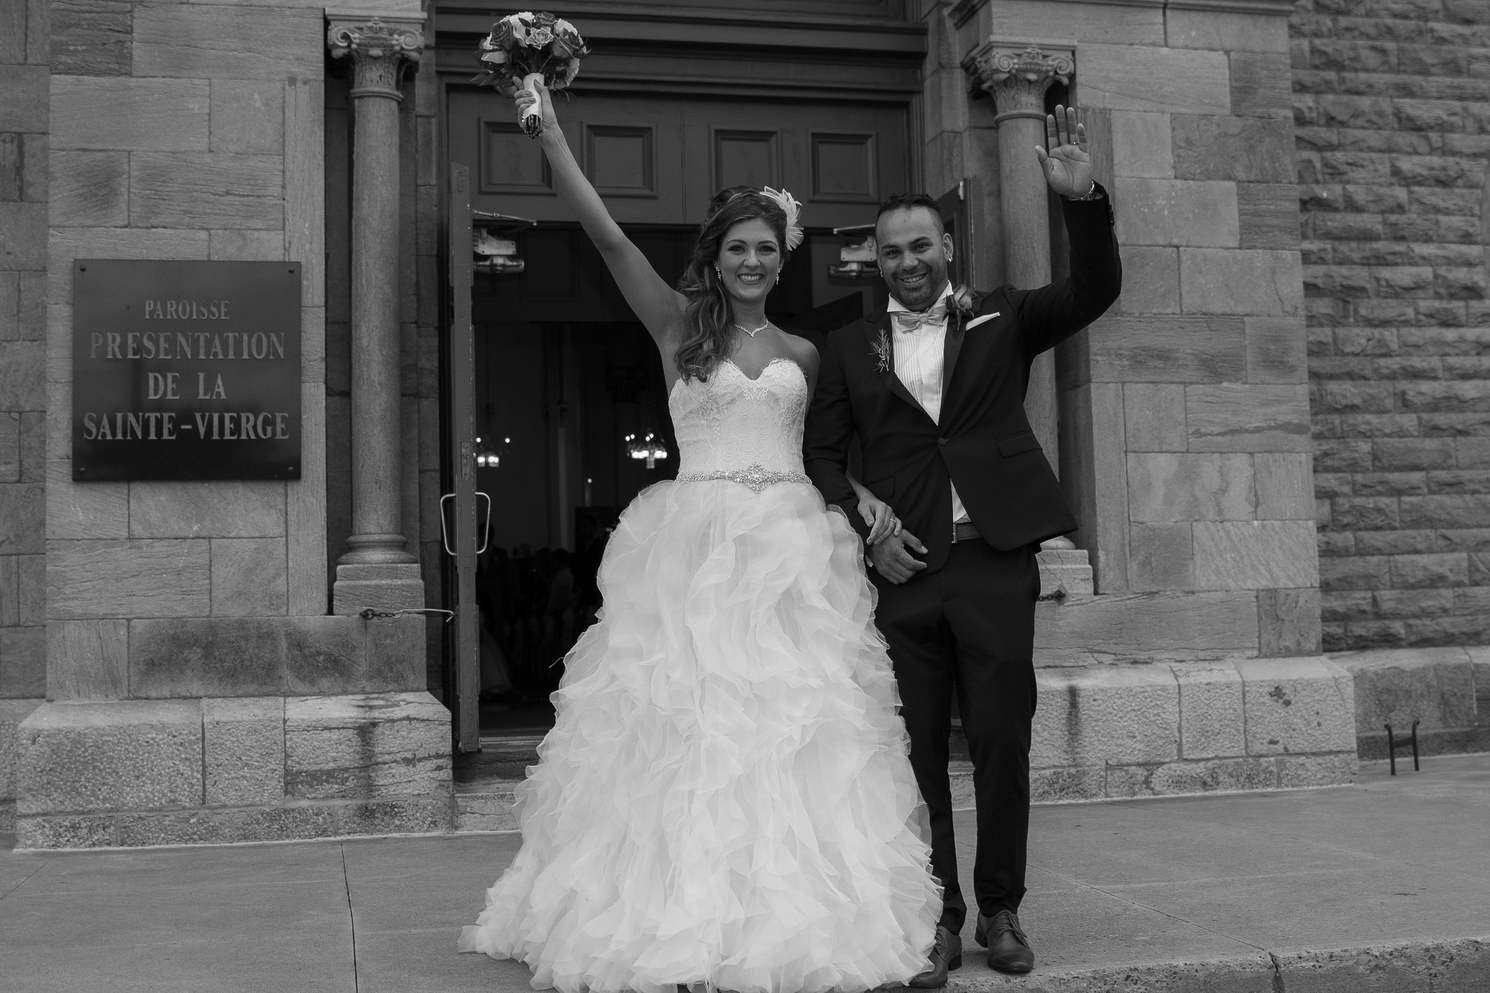 photographe de mariage montreal quebec photos